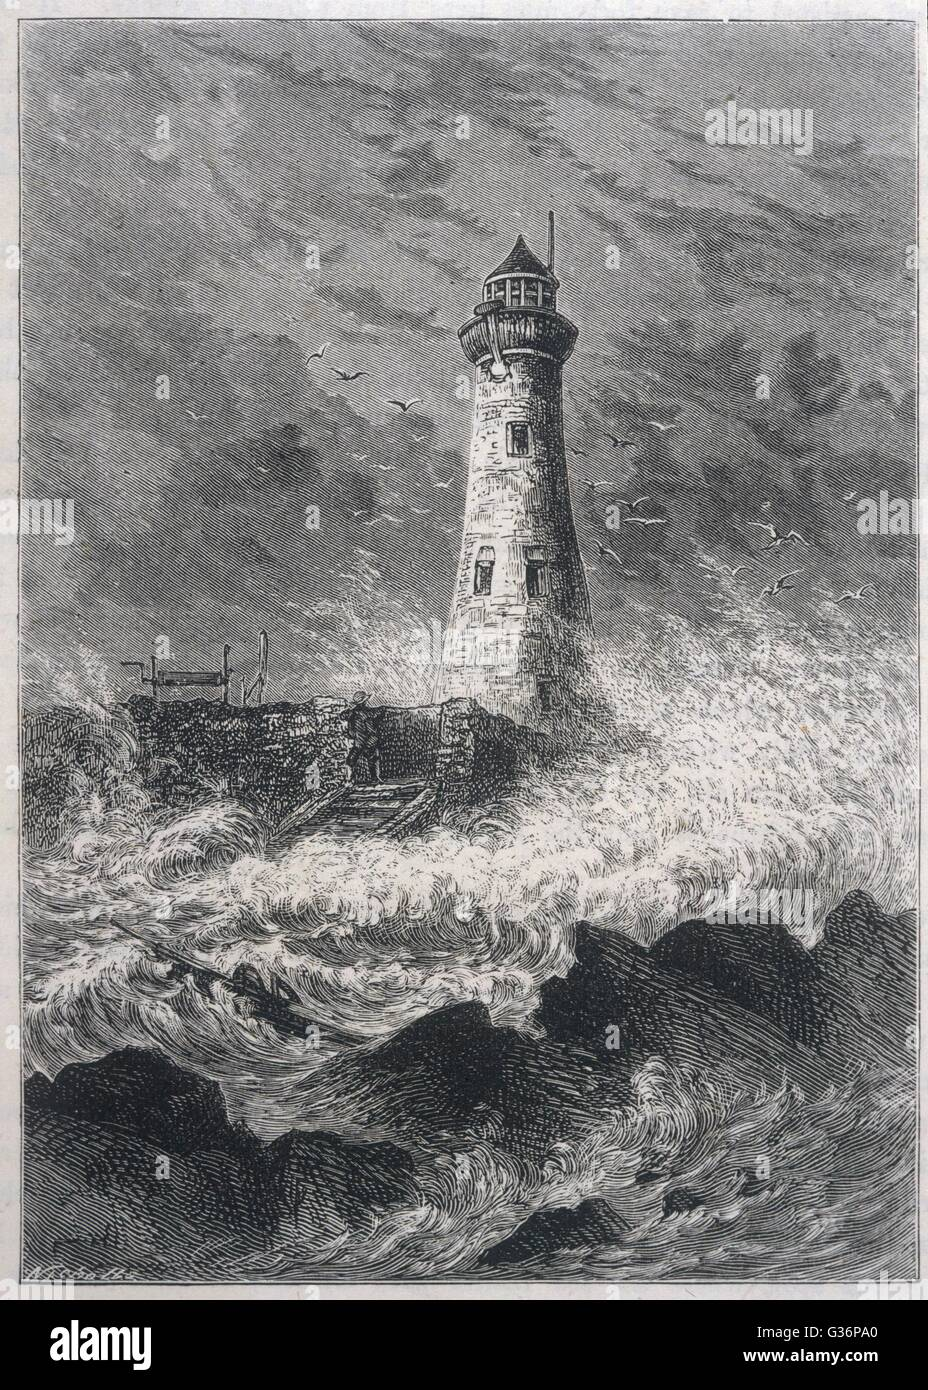 Longstone Lighthouse, on Longstone Rock, Farne Islands, Northumberland.  It was originally called the Outer Farne Lighthouse, and was designed and built in 1826.  It is famous for the wreck of the SS Forfarshire in 1838, and the rescue of 13 people by Gra Stock Photo